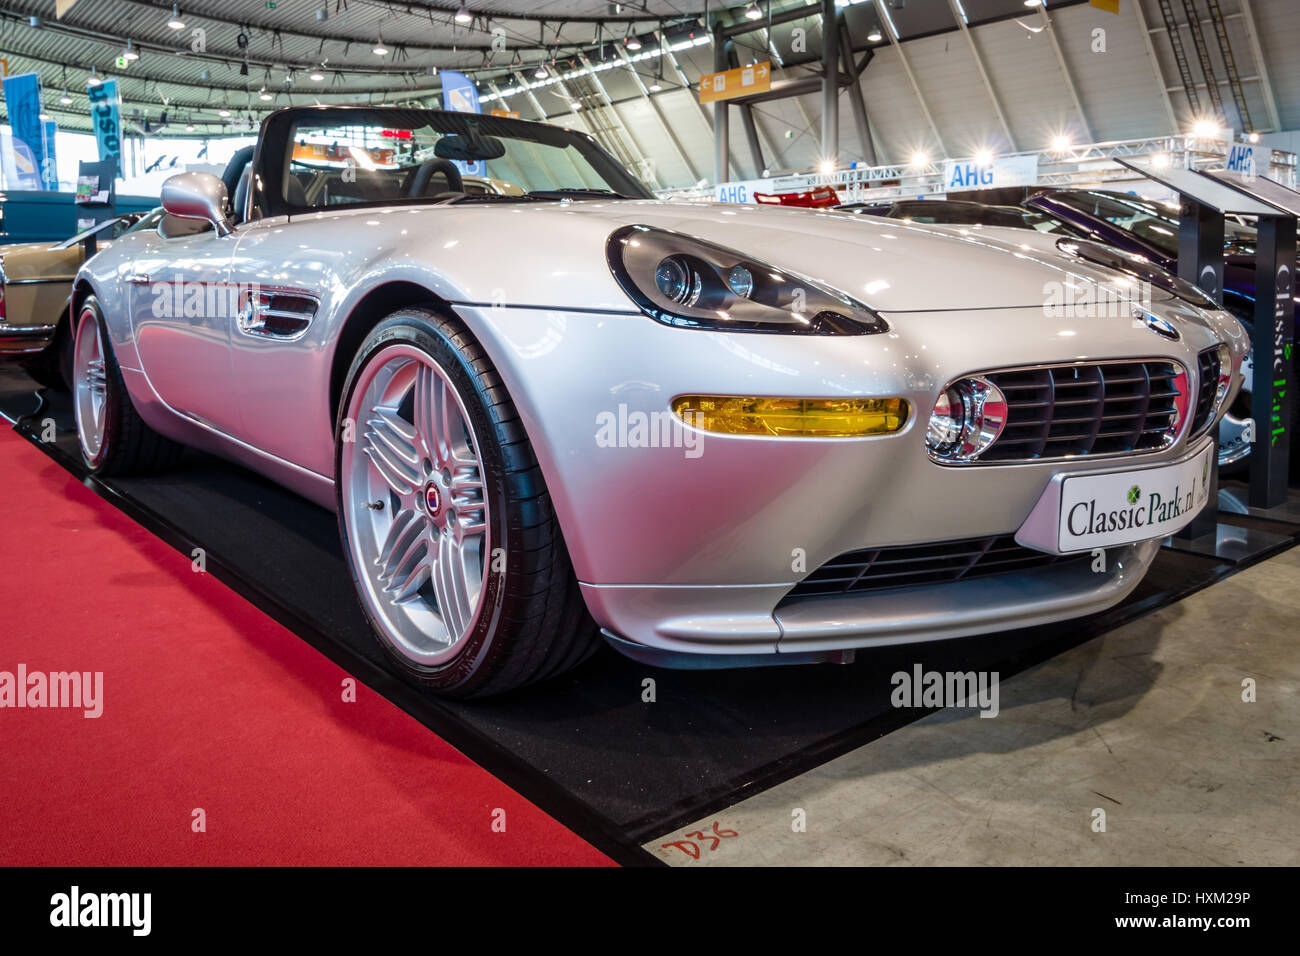 stuttgart germany march 02 2017 sports car bmw z8 alpina v8 stock photo royalty free image. Black Bedroom Furniture Sets. Home Design Ideas